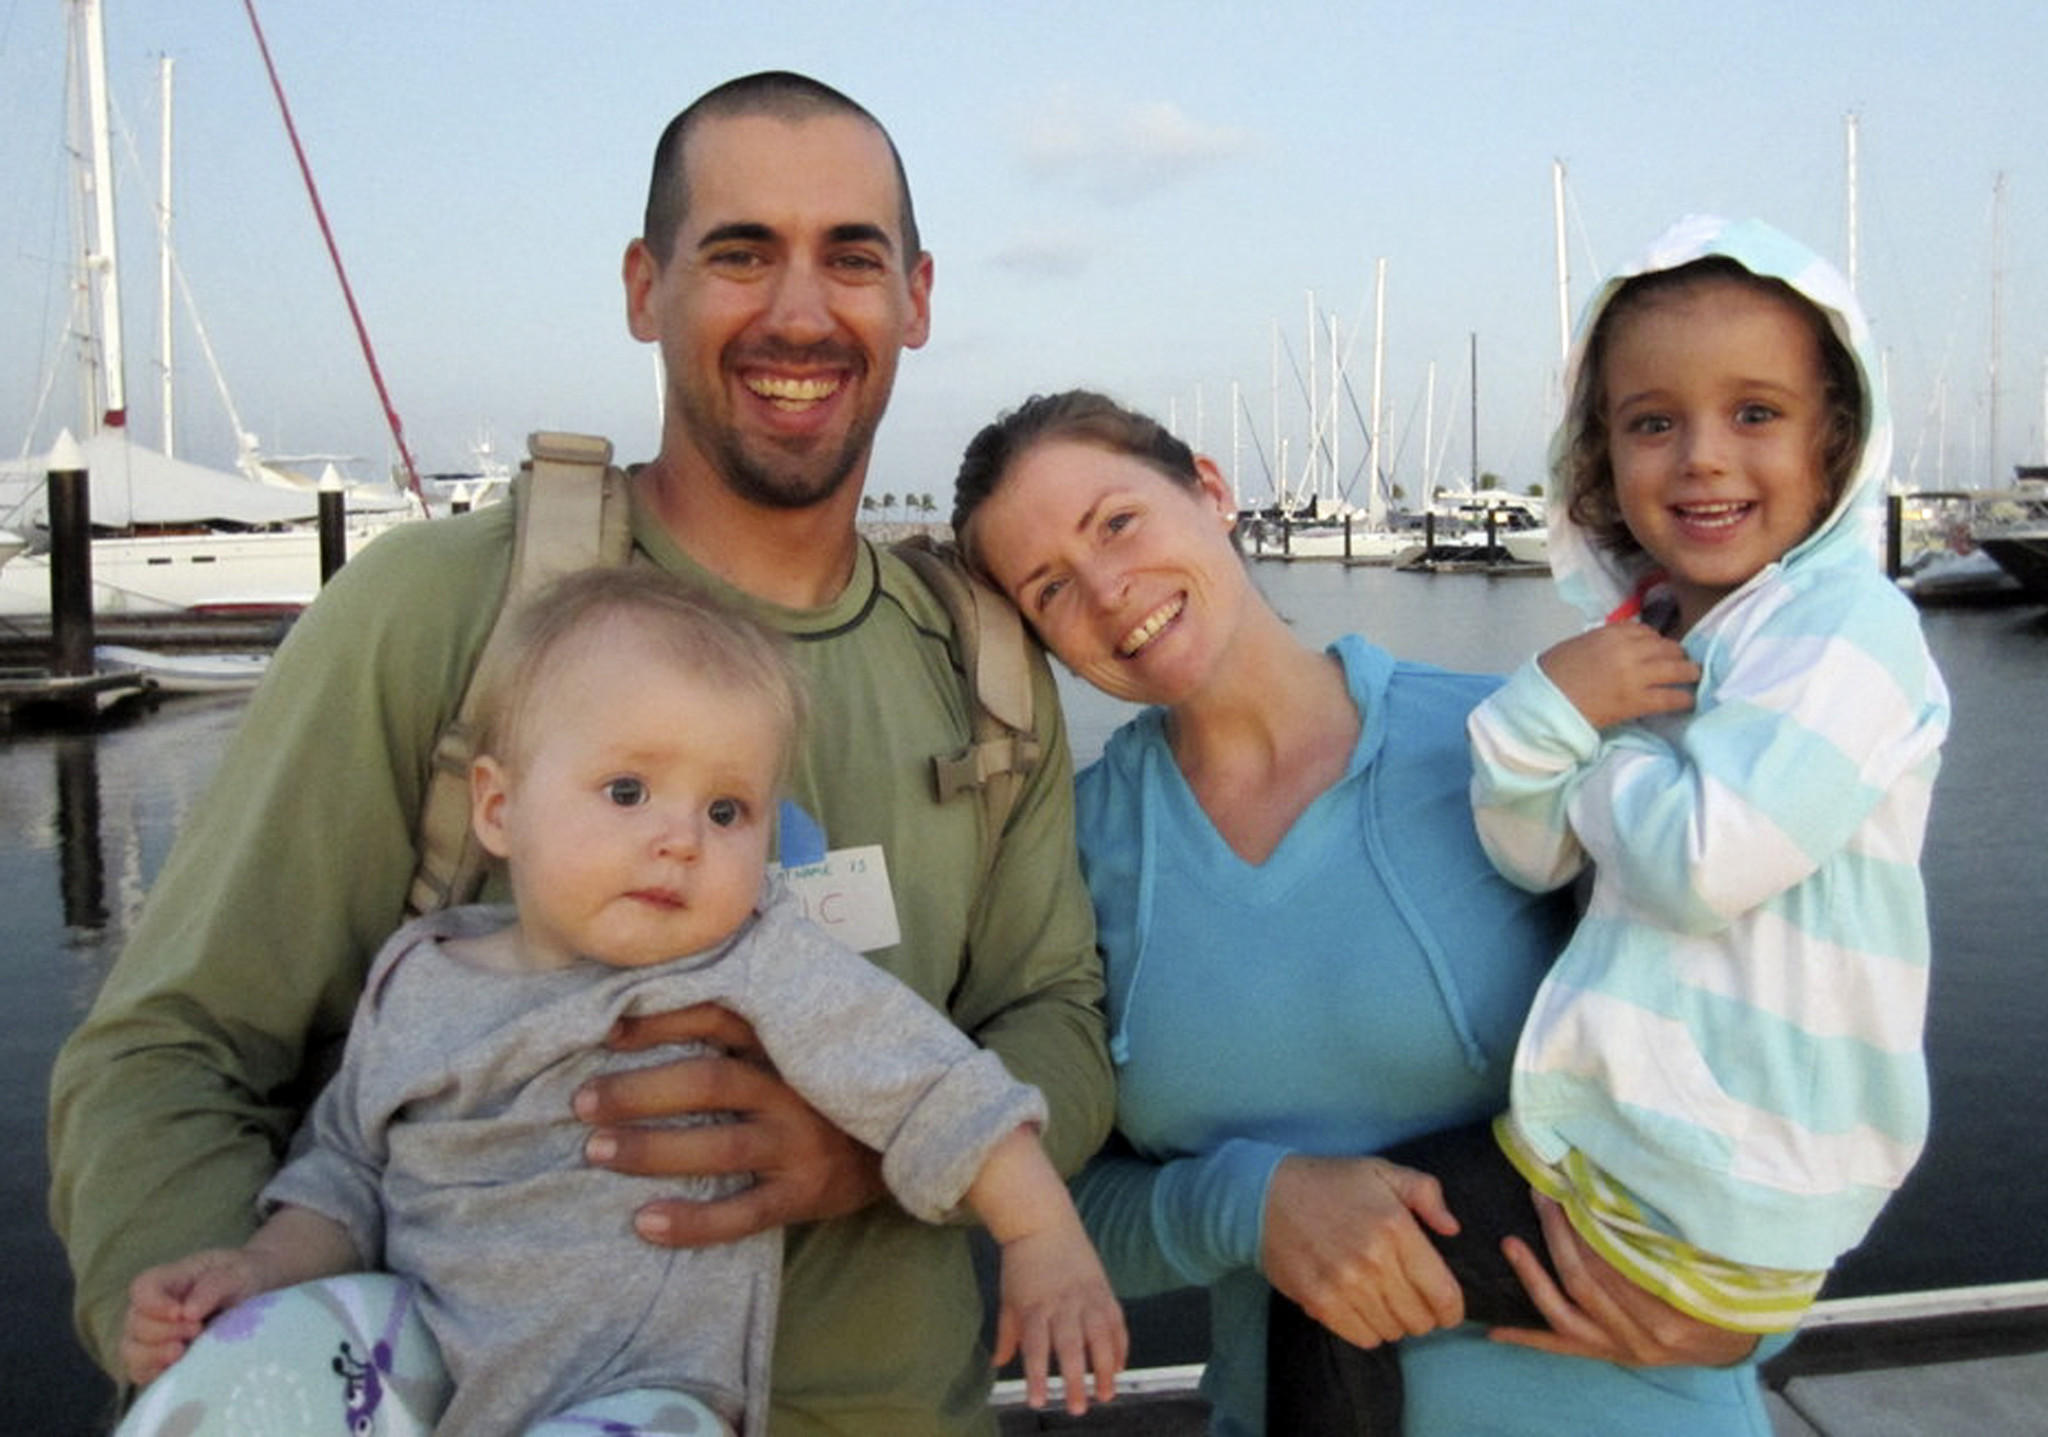 Eric and Charlotte Kaufman with their daughters Lyra, 1, left, and Cora, 3. The family arrived in San Diego on Wednesday aboard the Navy warship that rescued them.